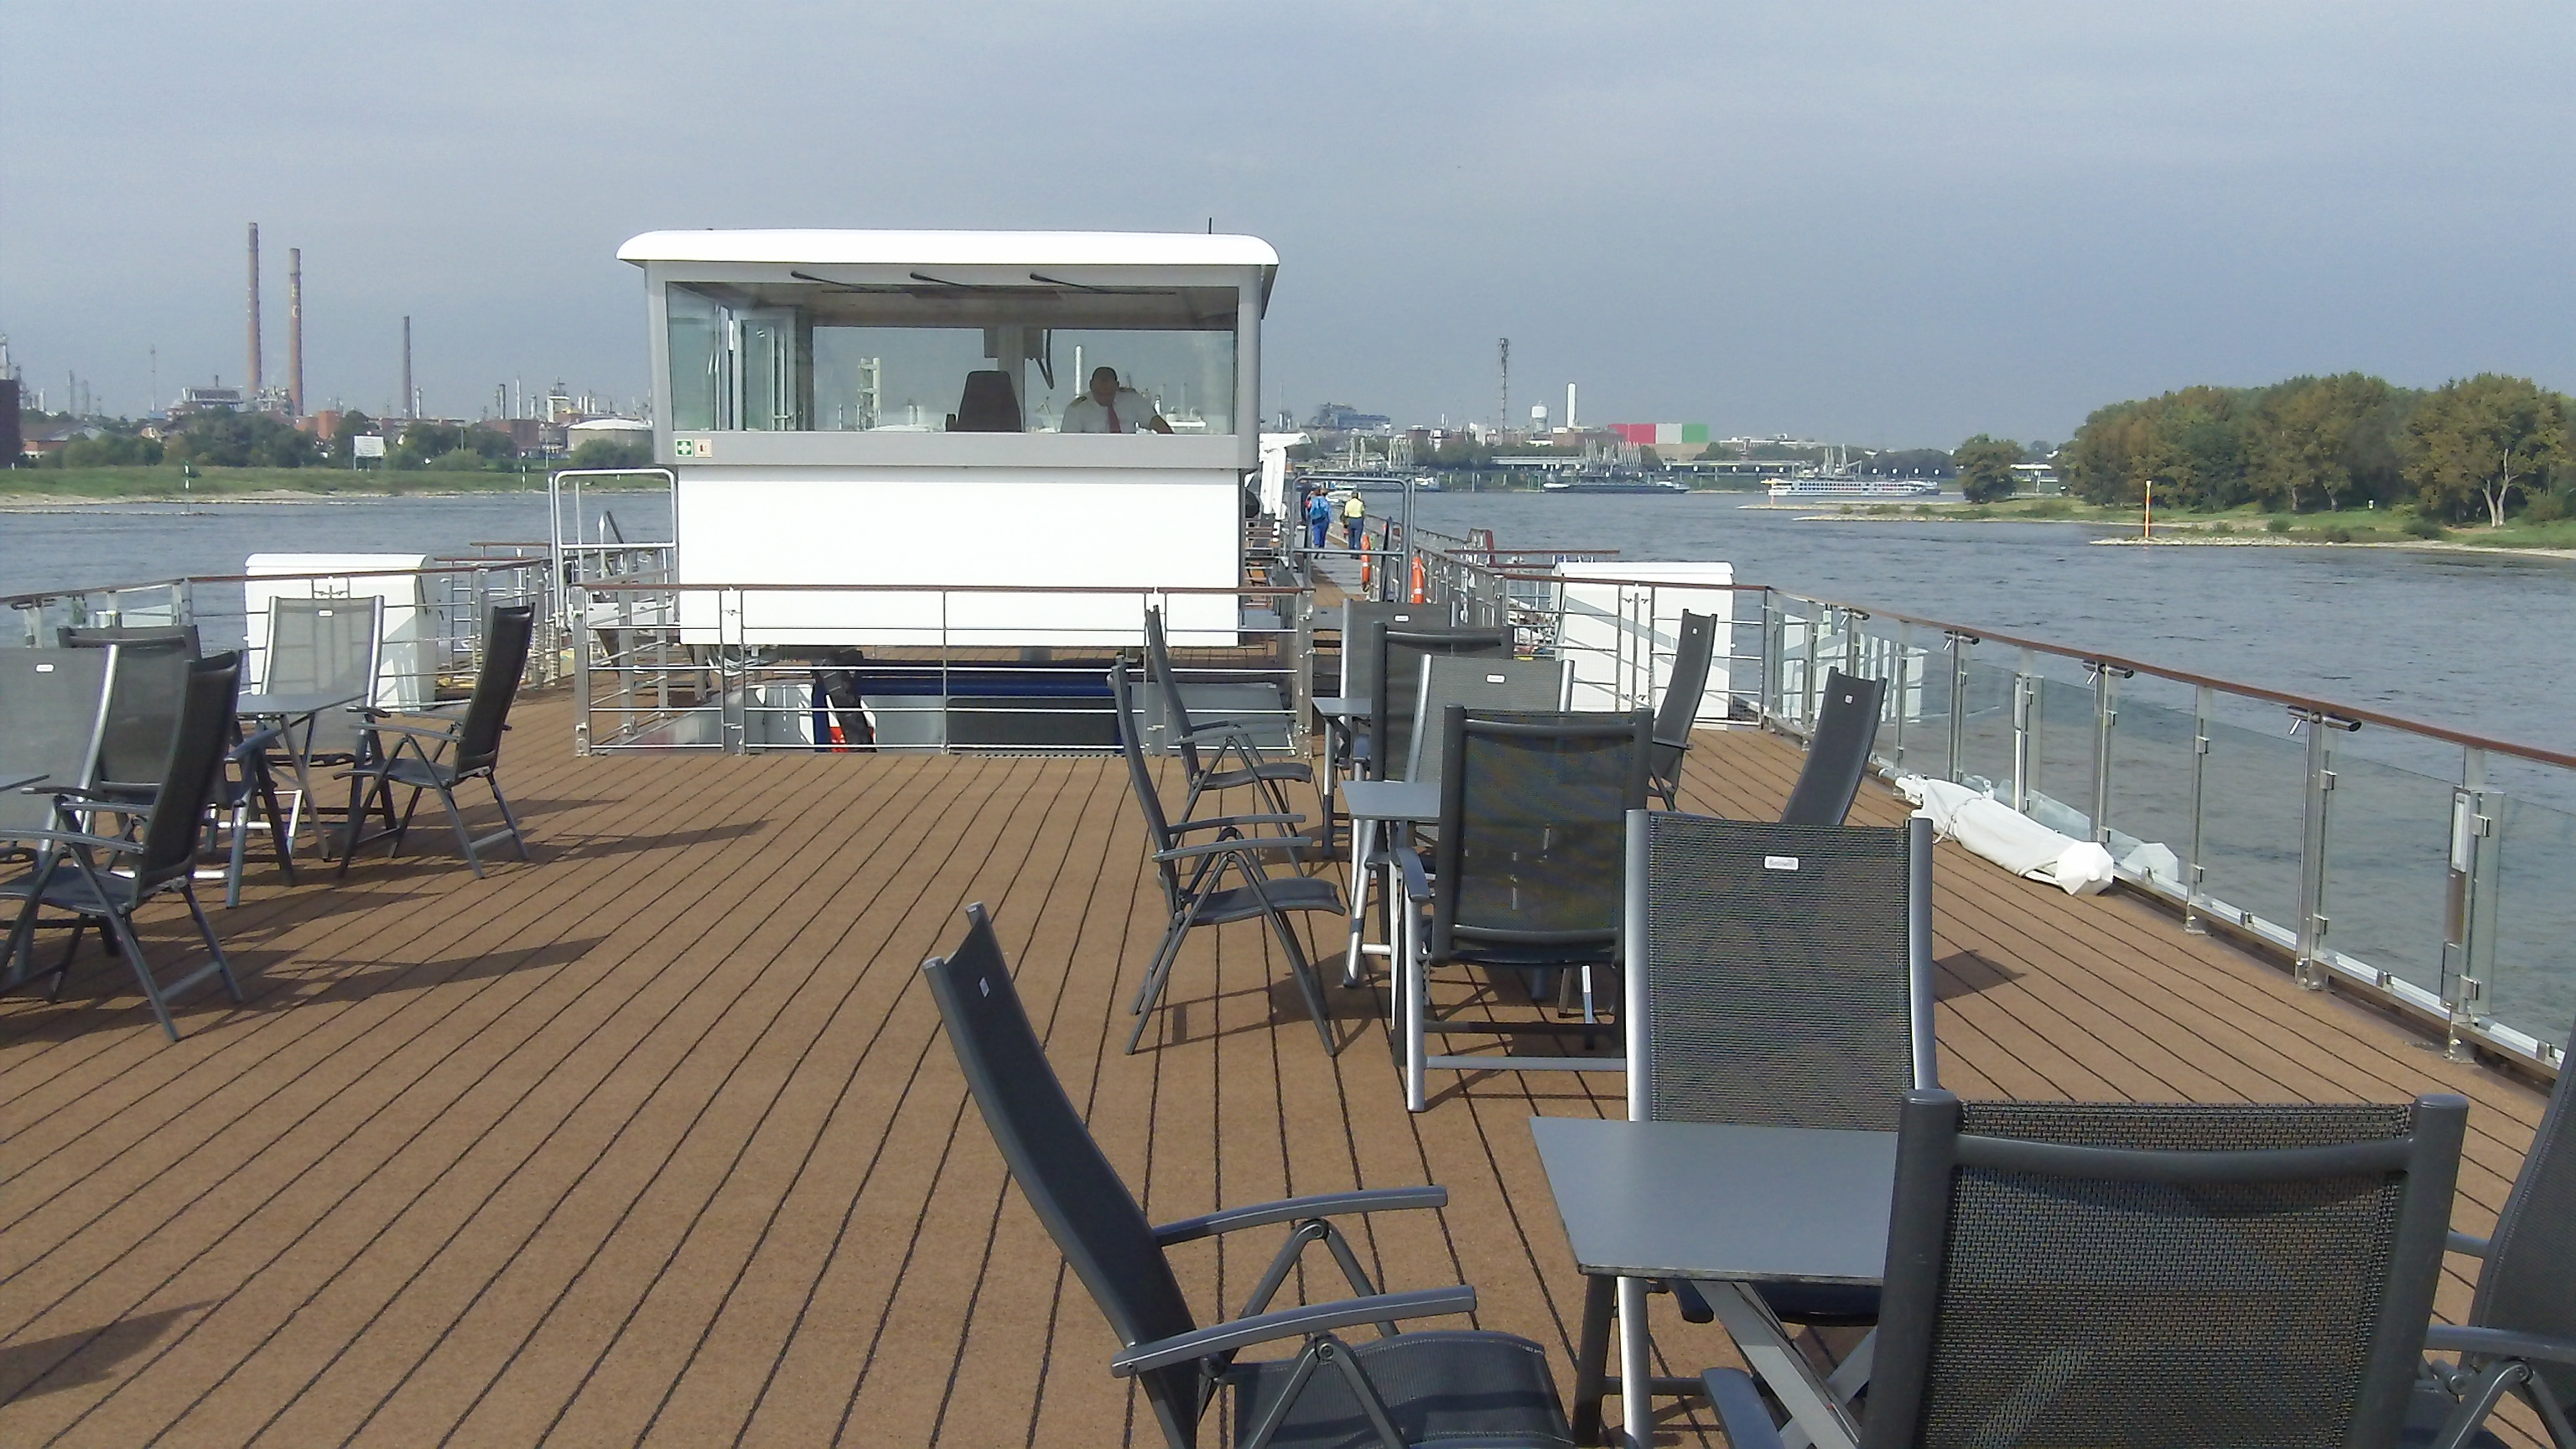 View of the top deck of Viking ship with the wheelhouse in the up position. Click to view larger version